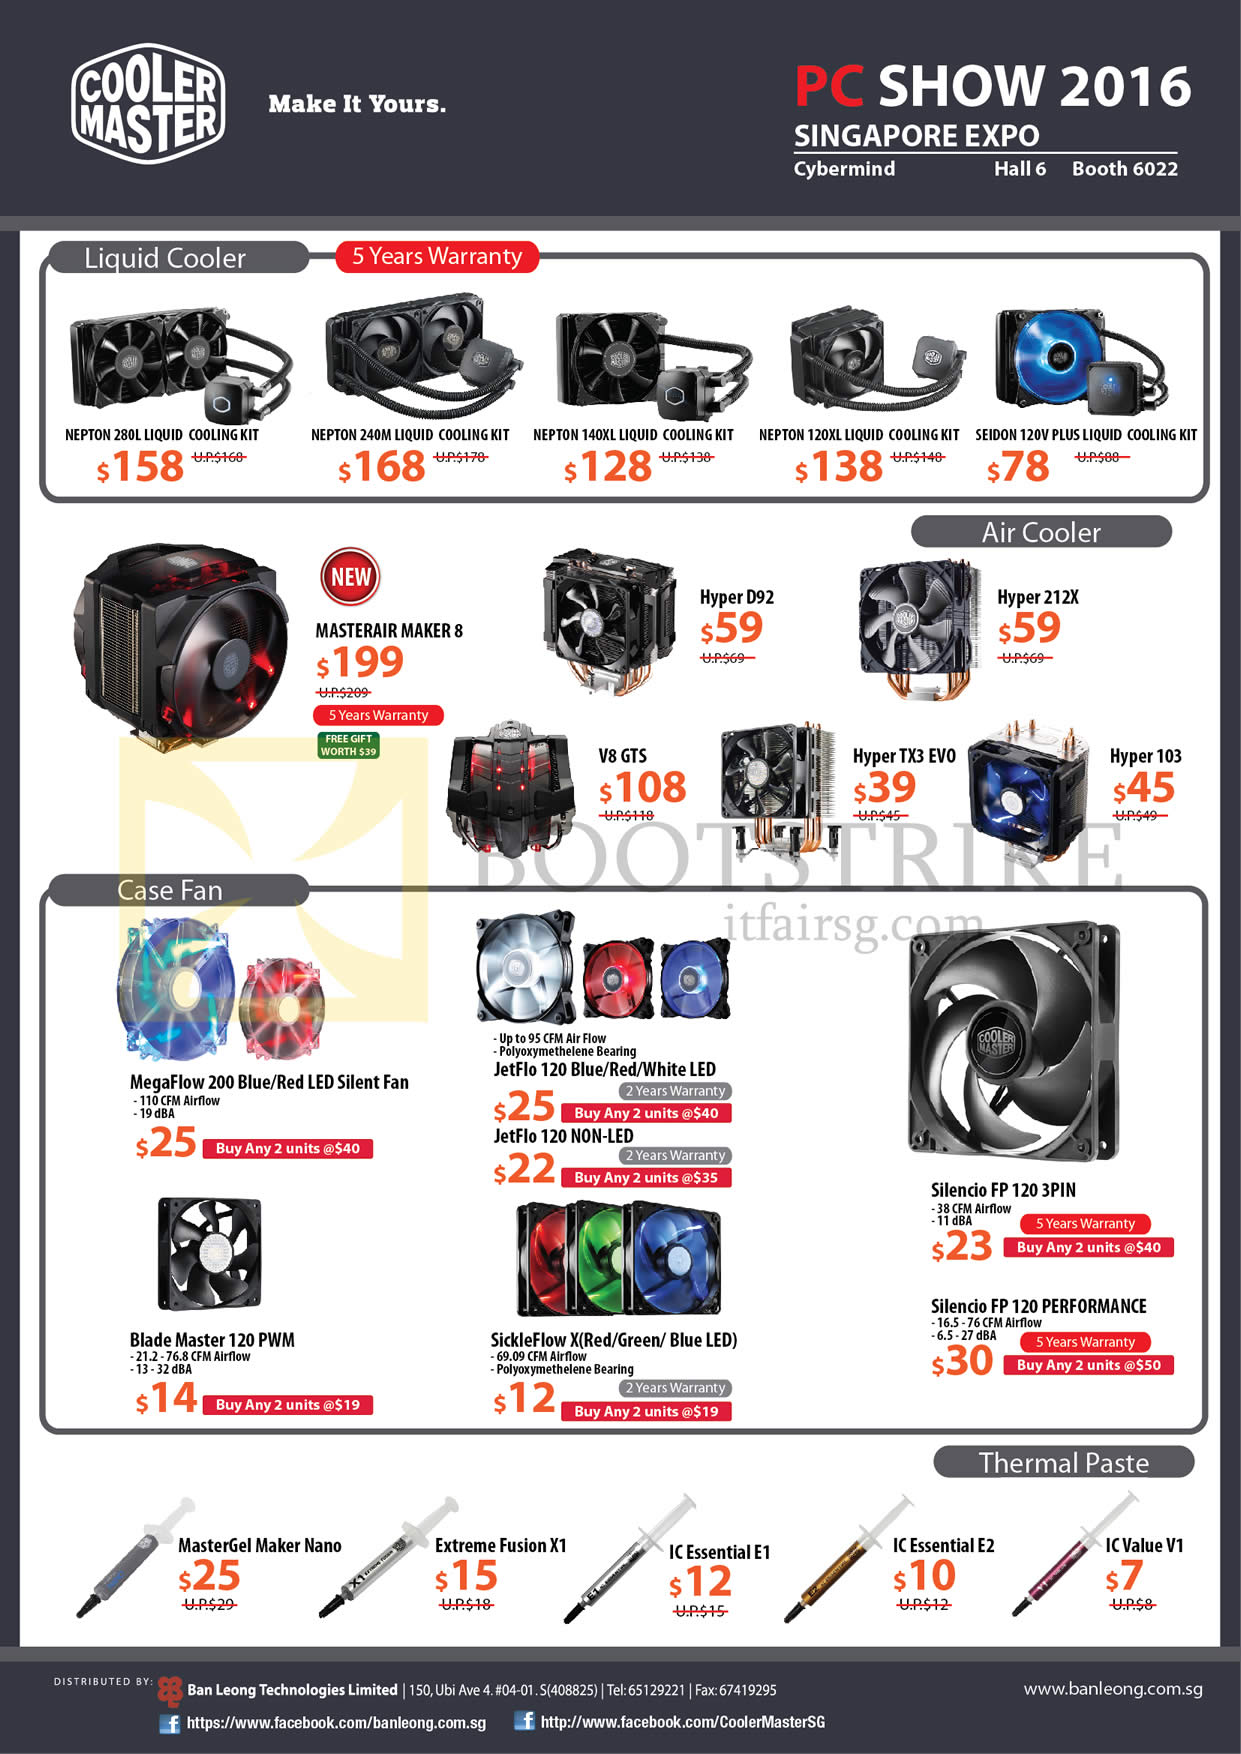 PC SHOW 2016 price list image brochure of Cybermind Cooler Master Liquid Coolers, Air Coolers, Case Fans, Thermal Paste